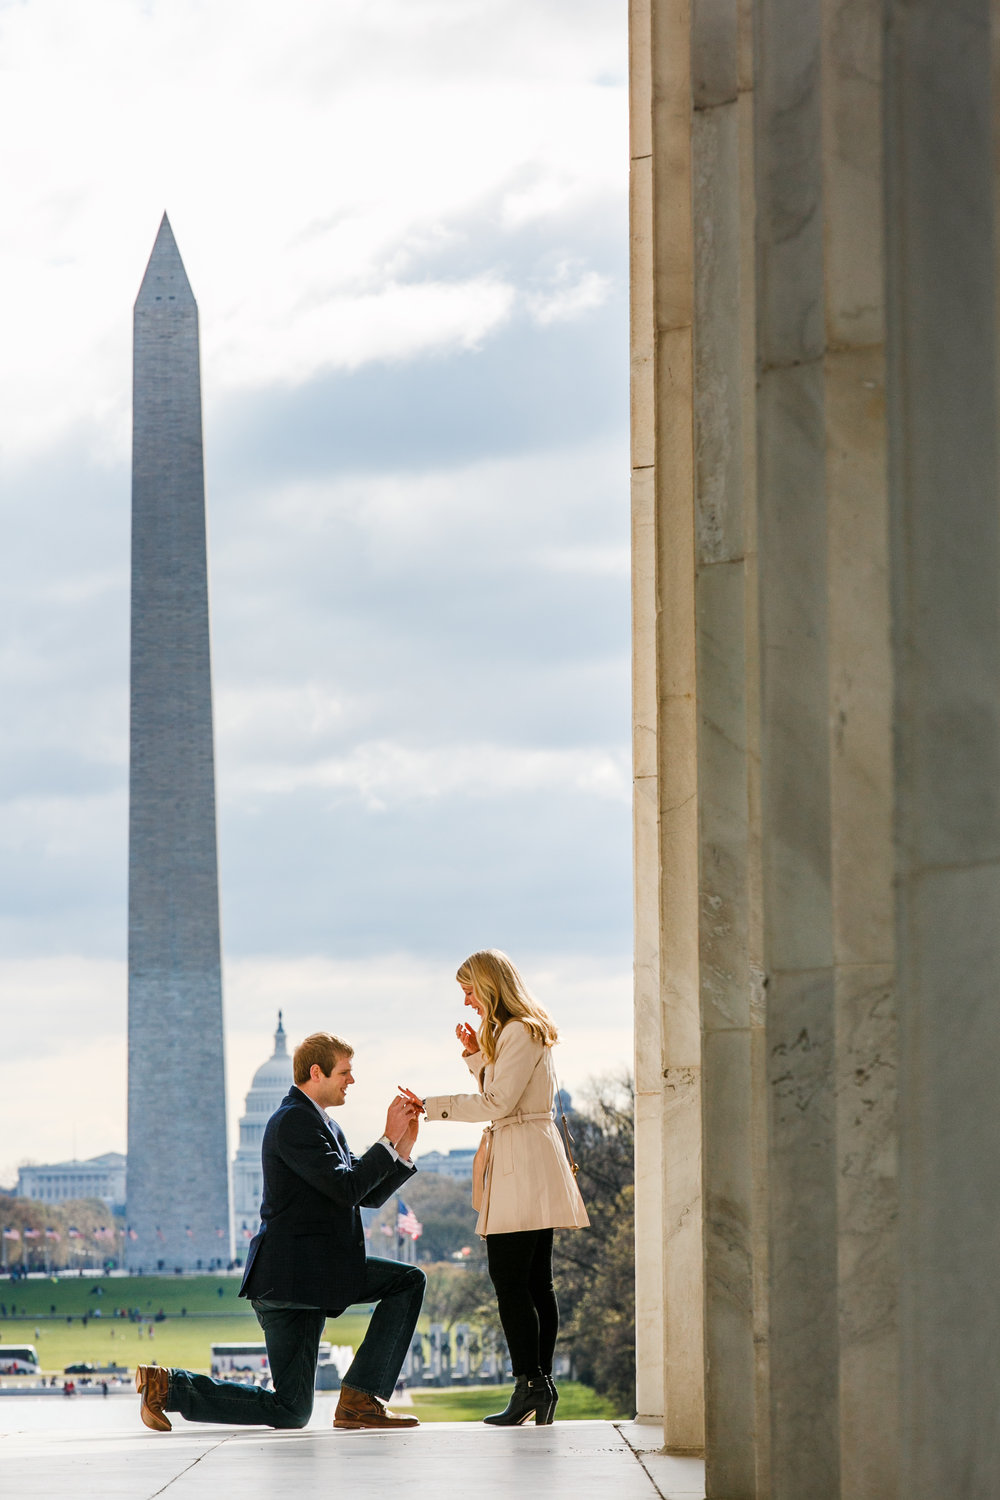 Lincoln-Memorial-Surprise-Marriage-Proposal